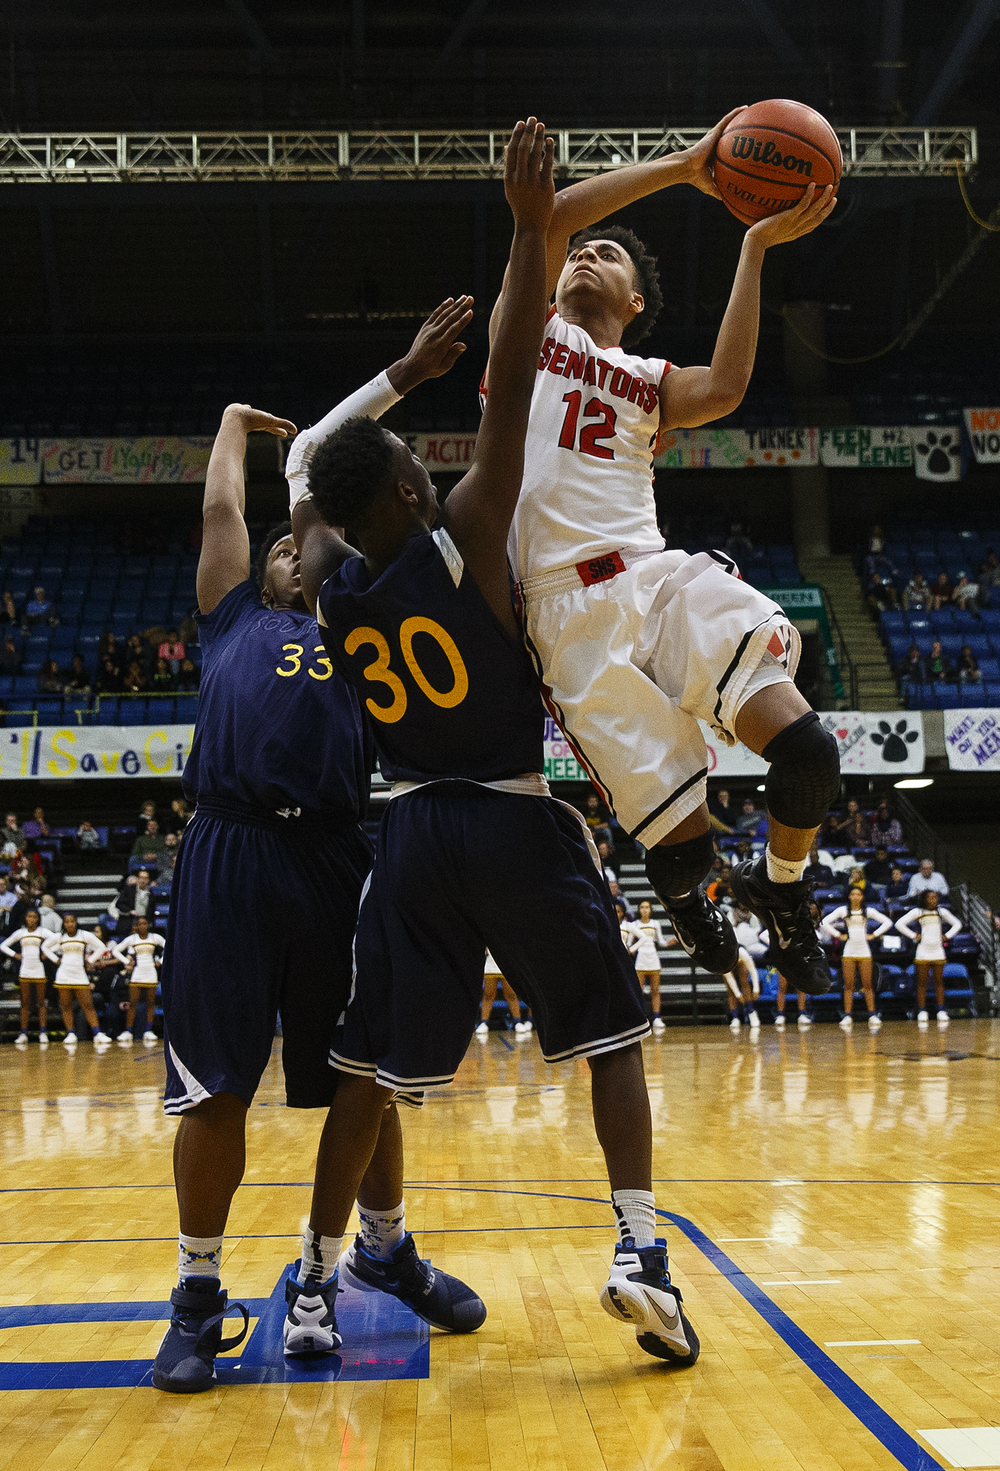 Springfield's Keon Day drives to the hoop against Springfield during the City Tournament at the Prairie Capital Convention Center Friday, Jan. 22, 2016. Ted Schurter/The State Journal-Register